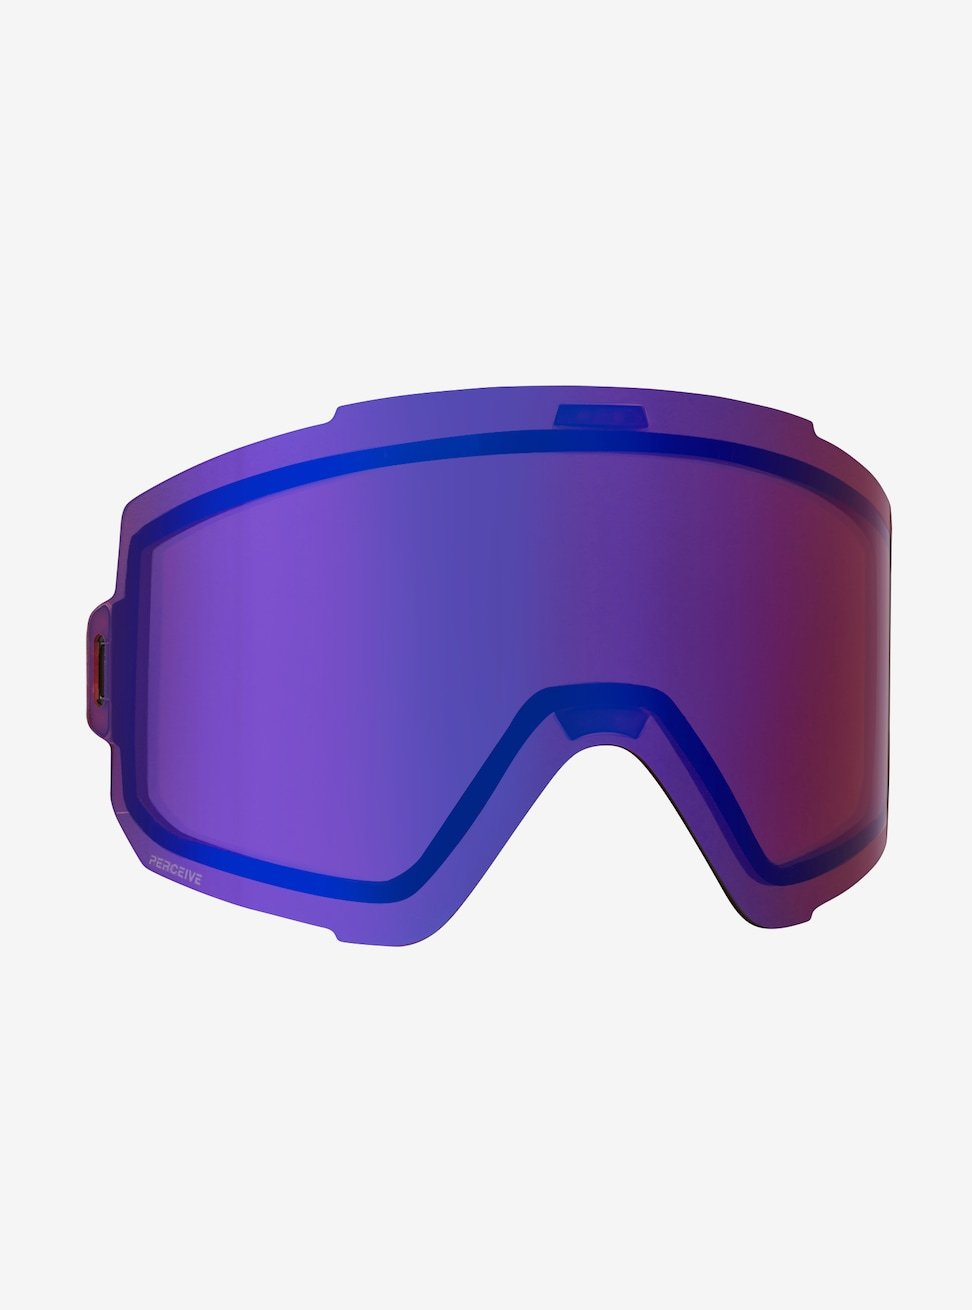 Anon Sync Goggle Lens (Multiple Color Options)